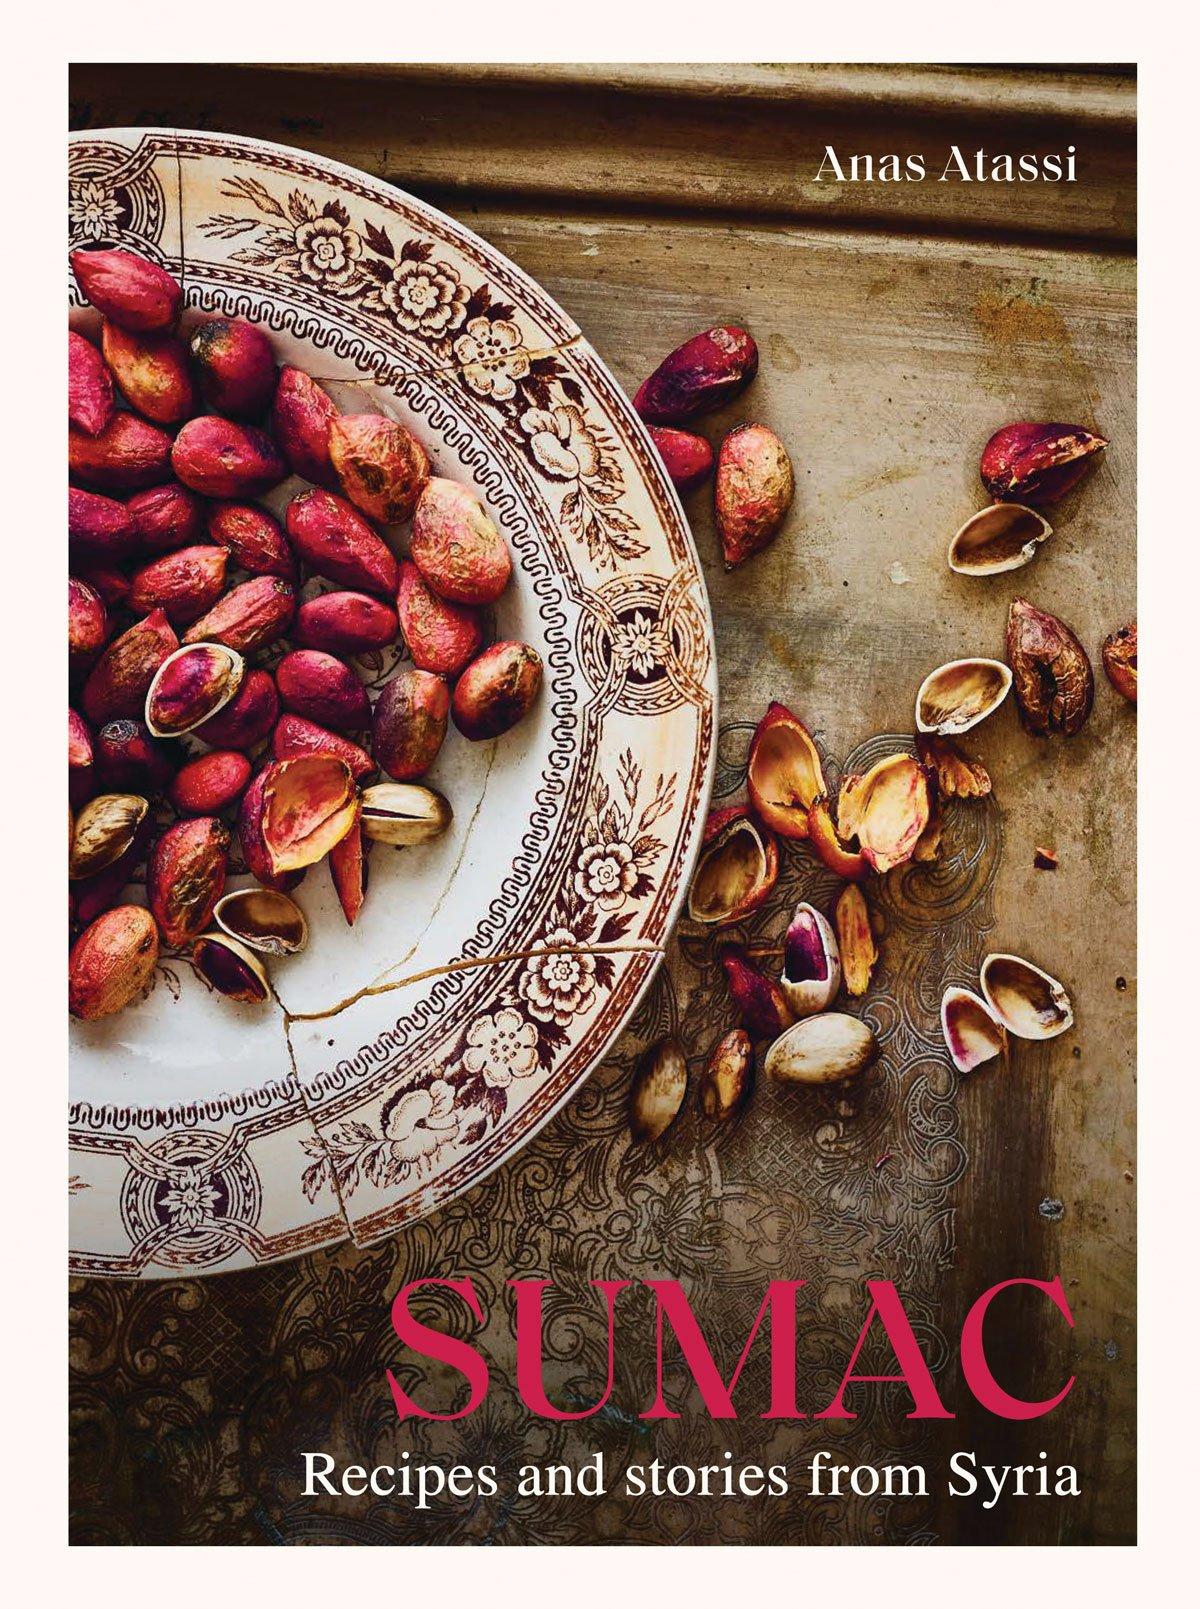 Book cover of Sumac by Anas Atassi